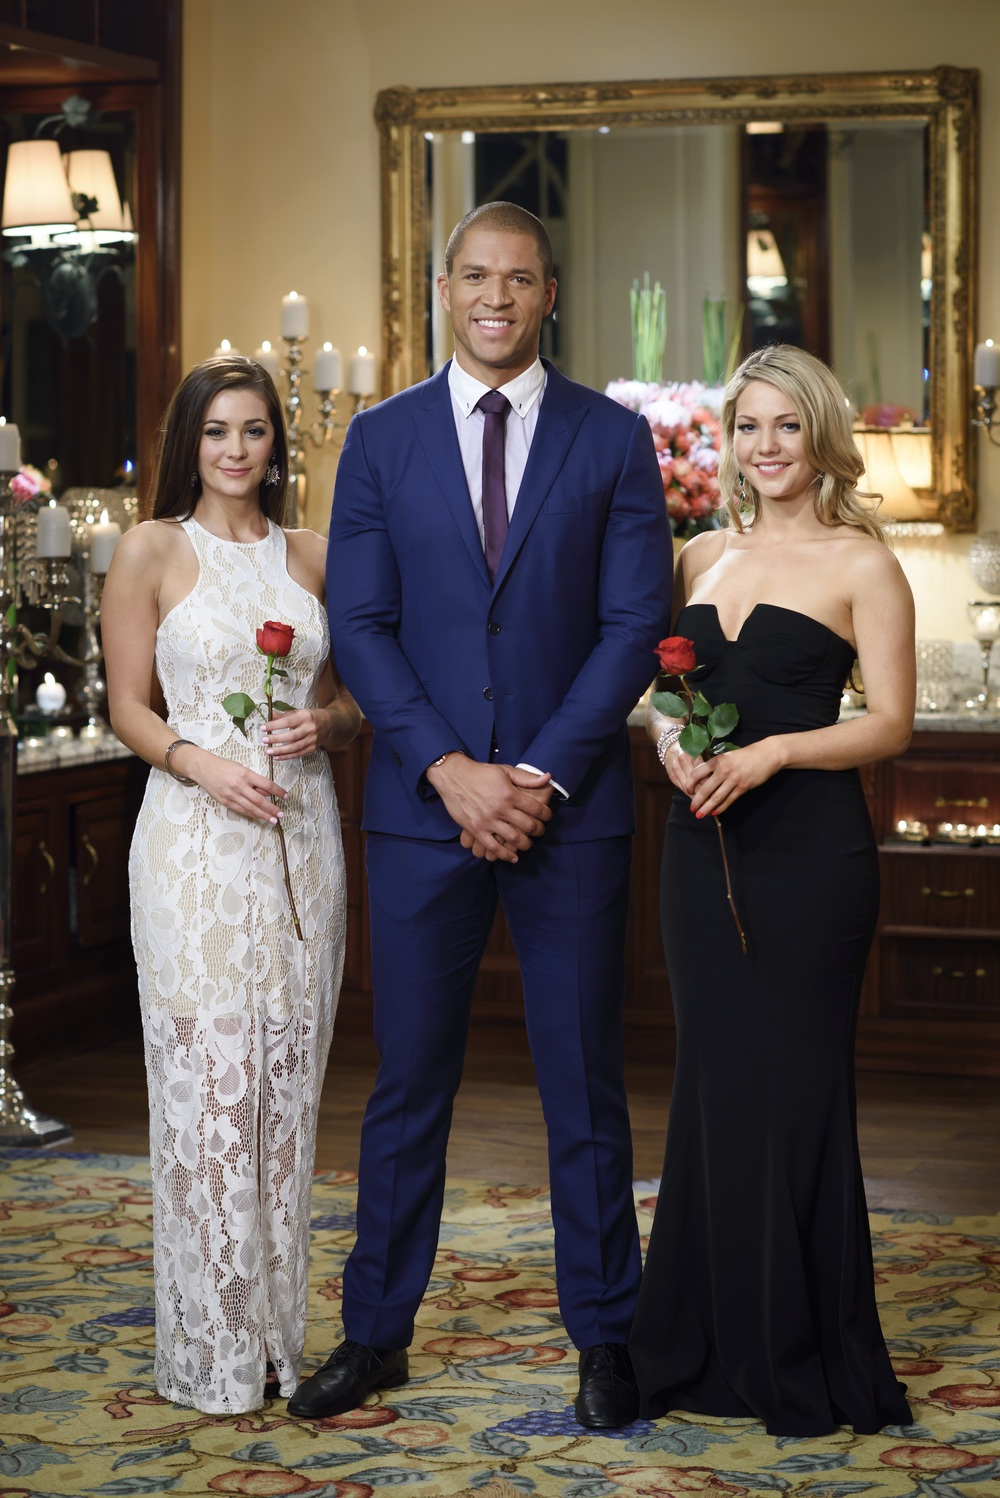 The Final Two - Will The Bachelor pick Lisa or Sam? image - supplied/Ten